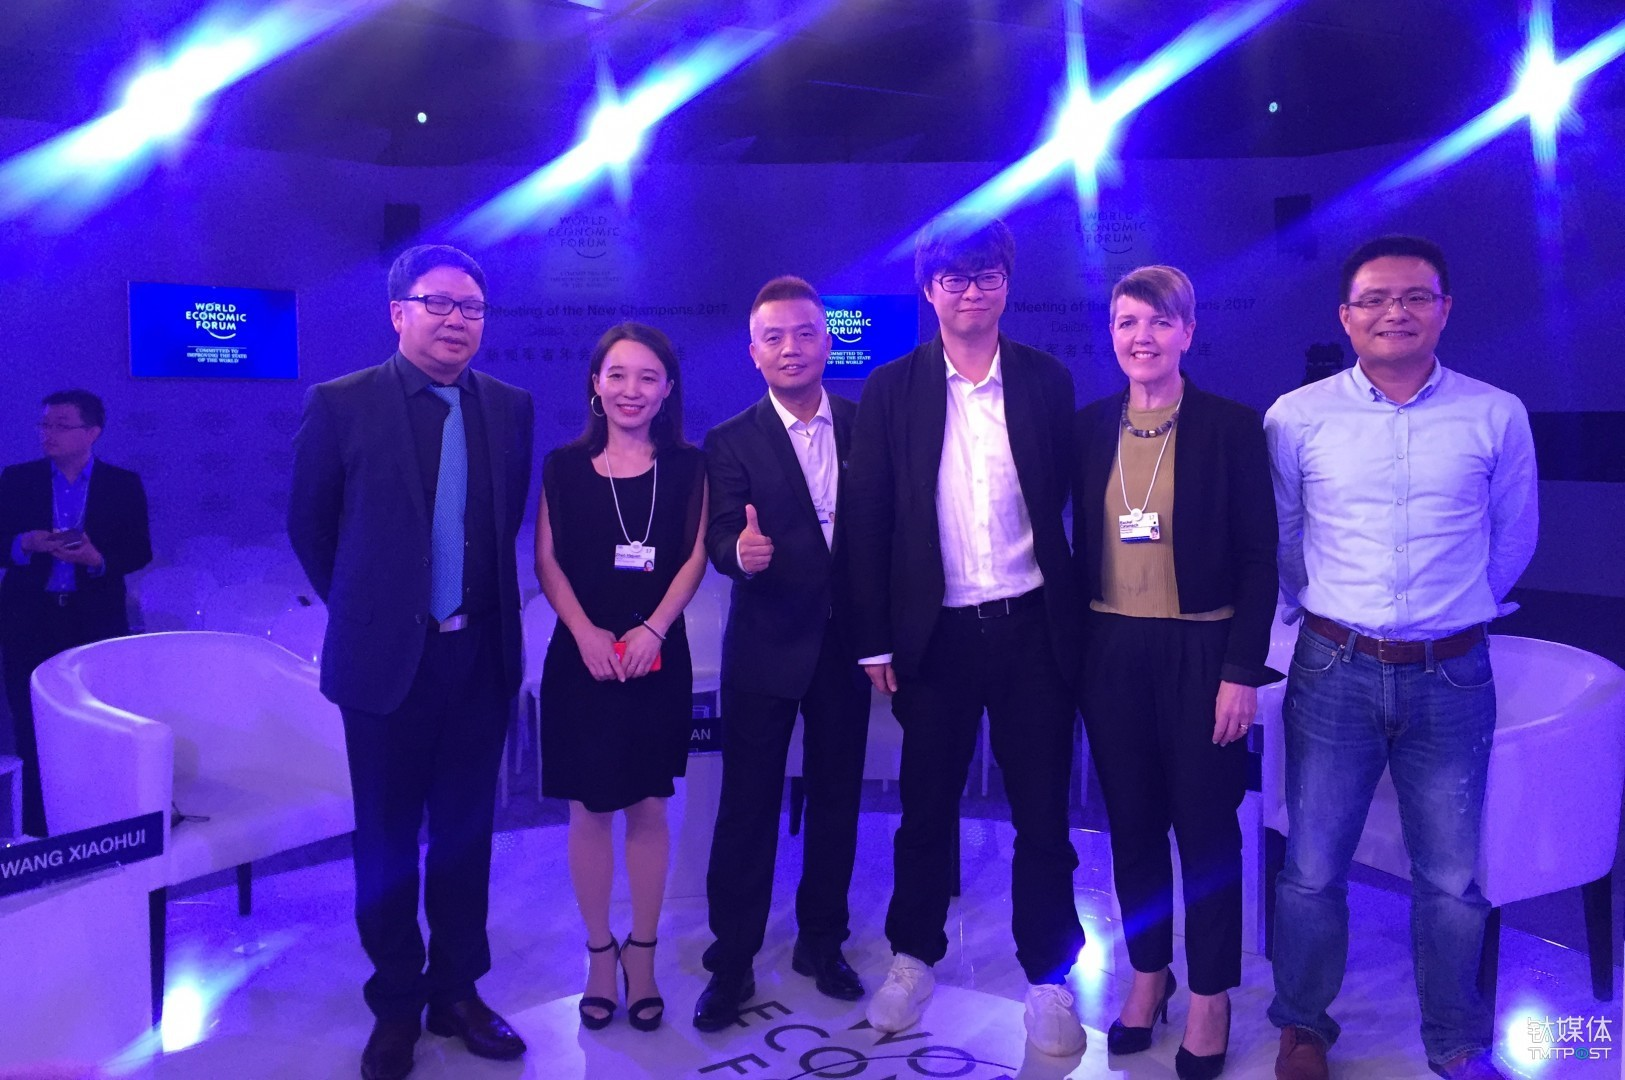 From left to right: Wu Bofan, president of Beijing Bofanstime Media Co., Ltd, Zhao Hejuan, founder and CEO of TMTPost, Wang Xiaohui, Chief Content Officer of iQiyi, Ying Shuling, CEO of Yingxiong Entertainment, Rachel Catanach, president of FleishmanHillard's China operations and Zhang Chi, vice president of China Cultural Industry Fund.